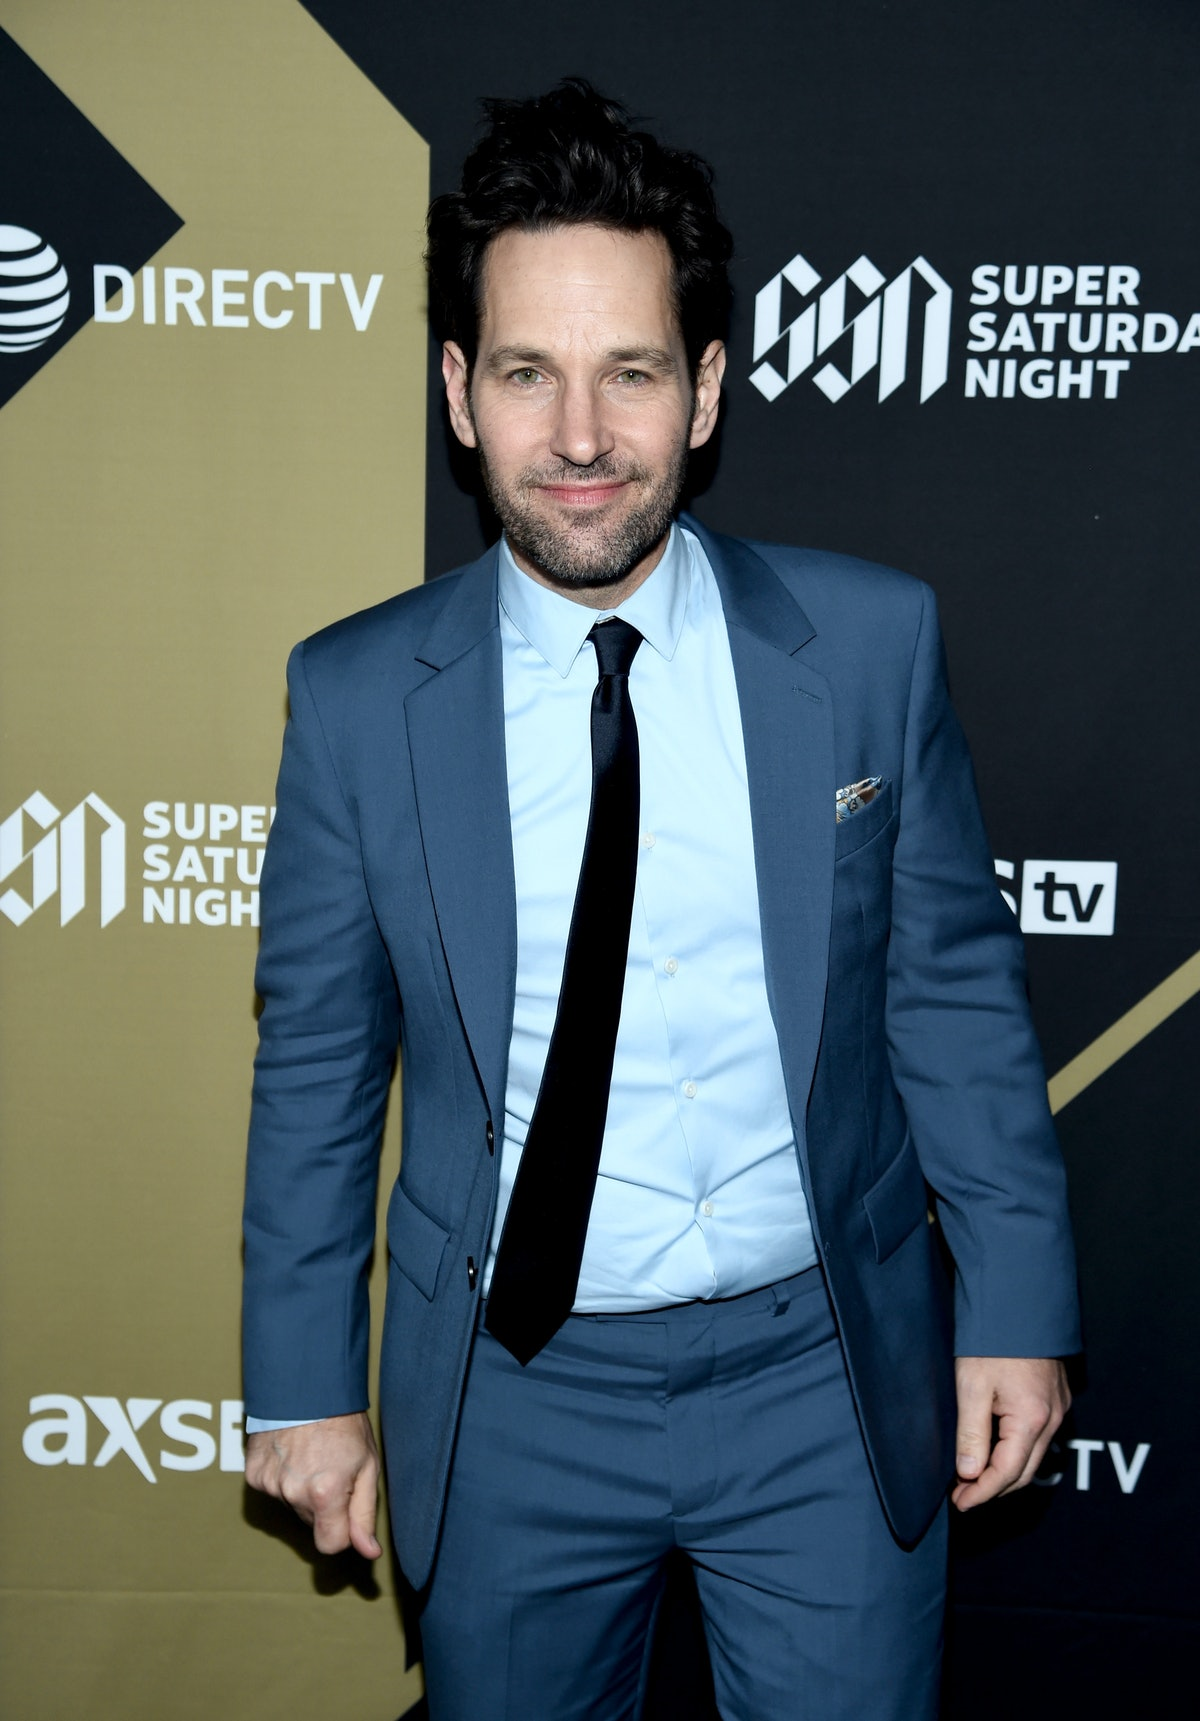 Paul Rudd's Response To People Joking That He Never Ages Is Too Perfect